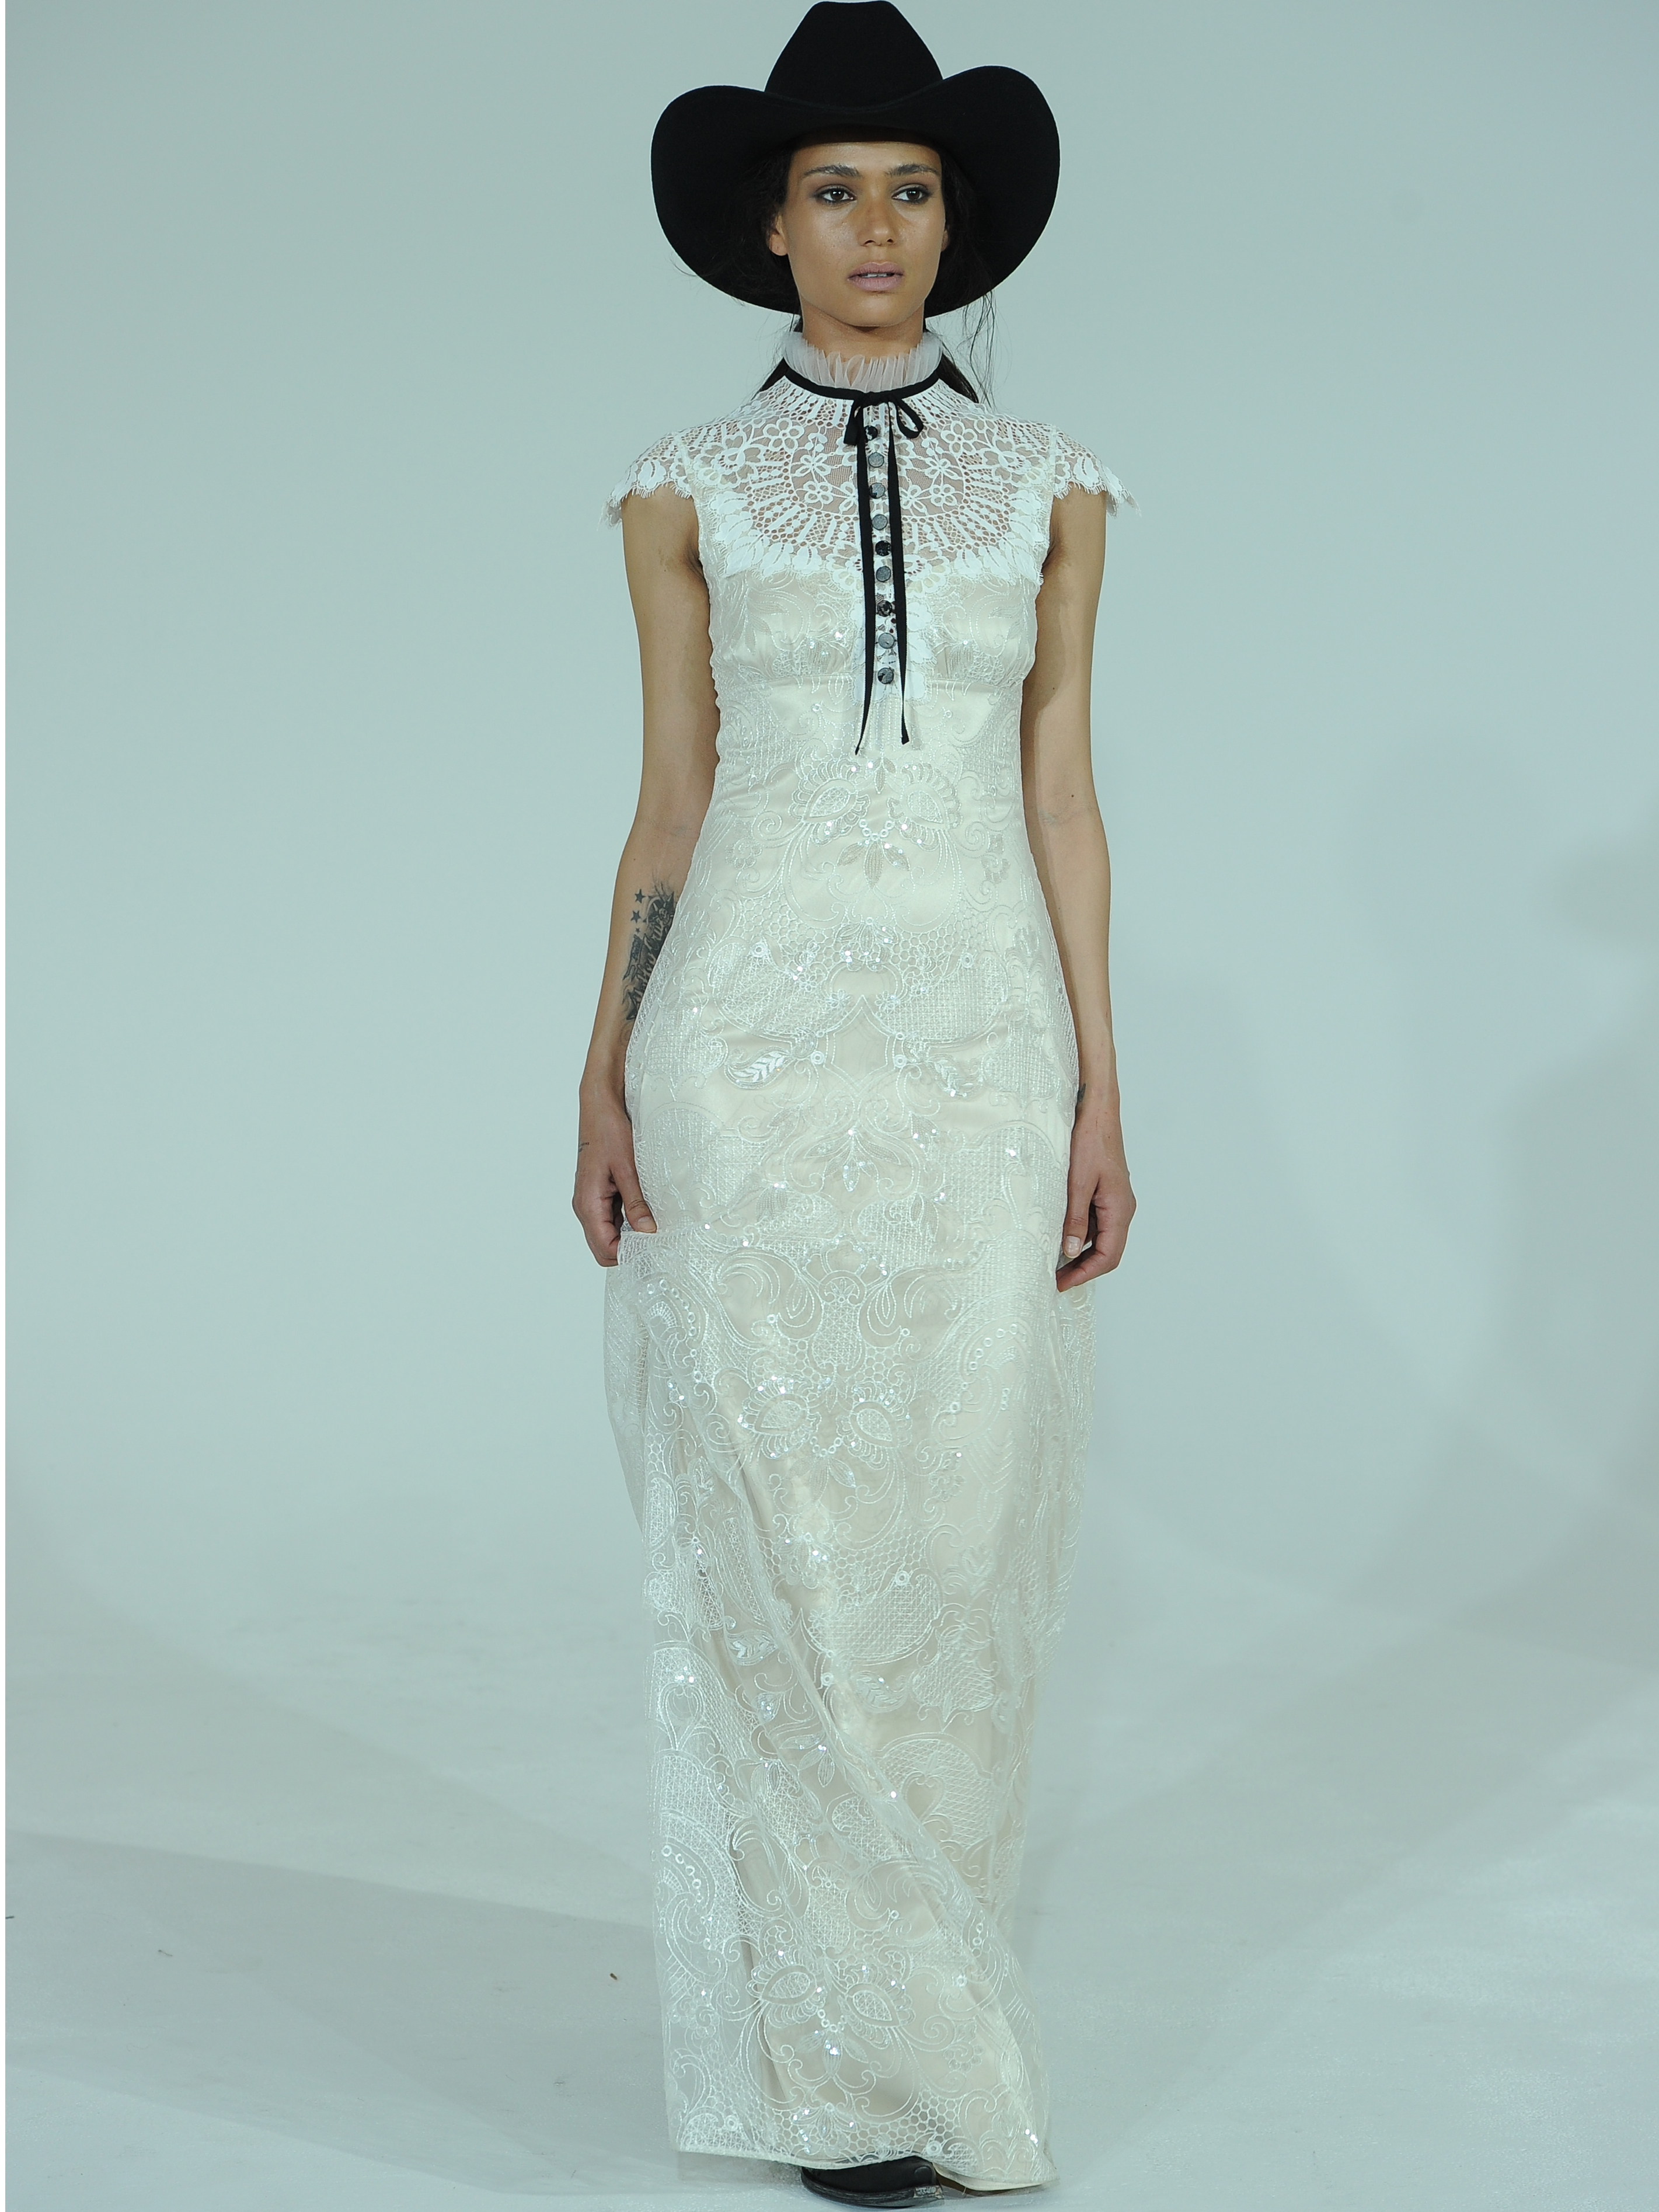 Claire Pettibone S Spring Wedding Dresses Take Us Back To The Wild West Huffpost